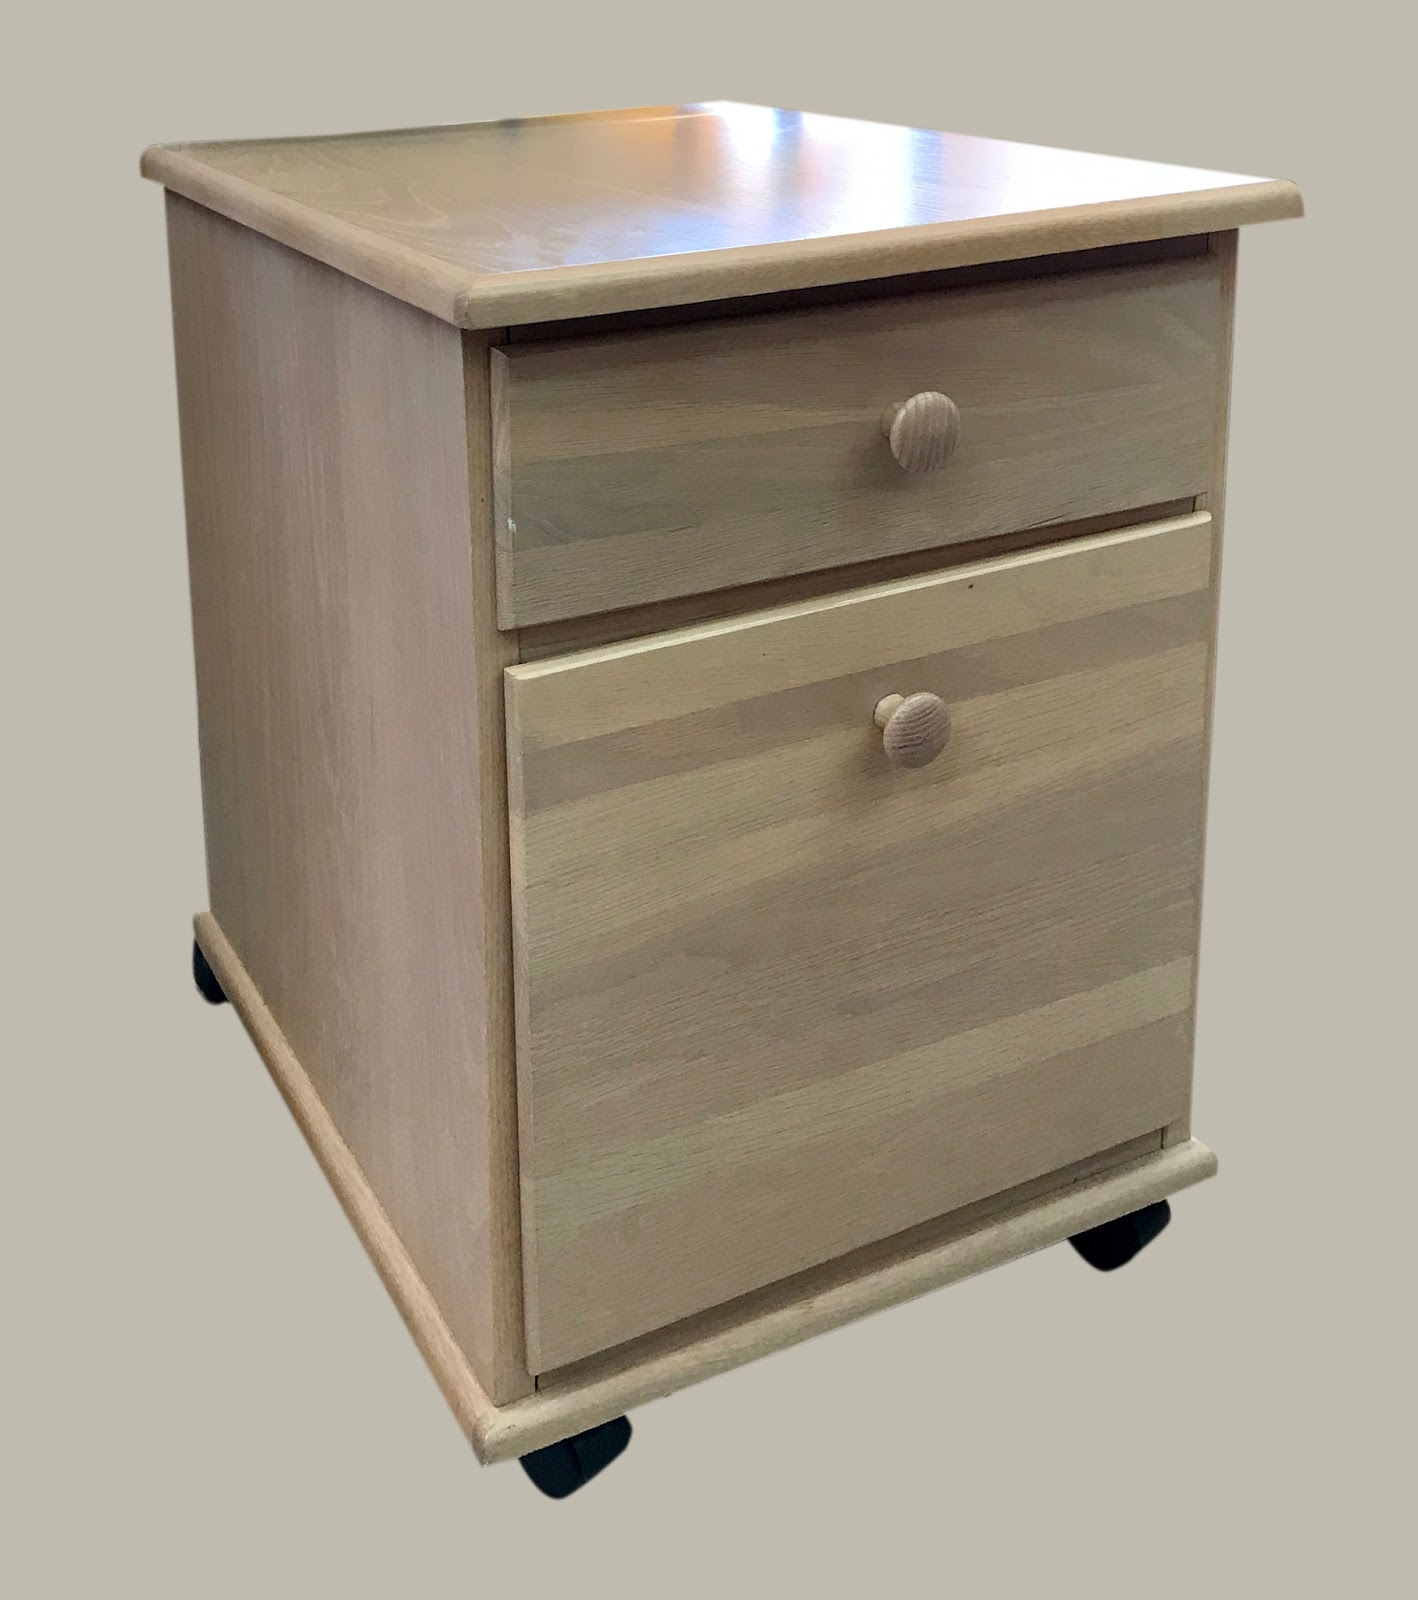 Uhuru Furniture & Collectibles: Small File Cabinet on ...